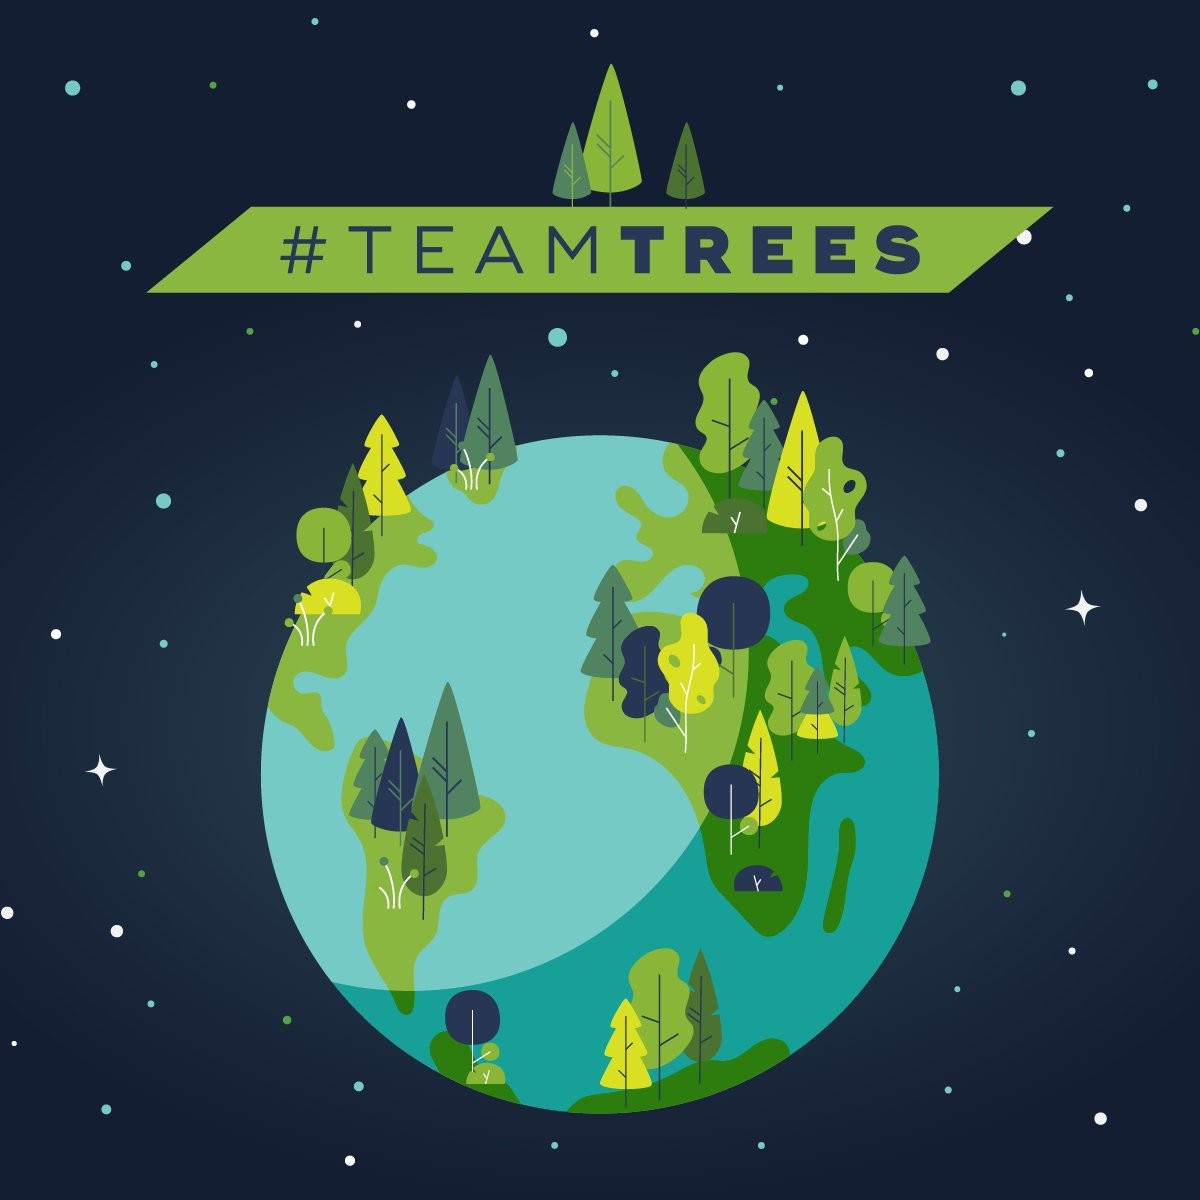 One of my most favorite things in the whole wide world is the trees. Get #TeamTrees to their goal of planting 20 million trees by January 1, 2020! 🌲